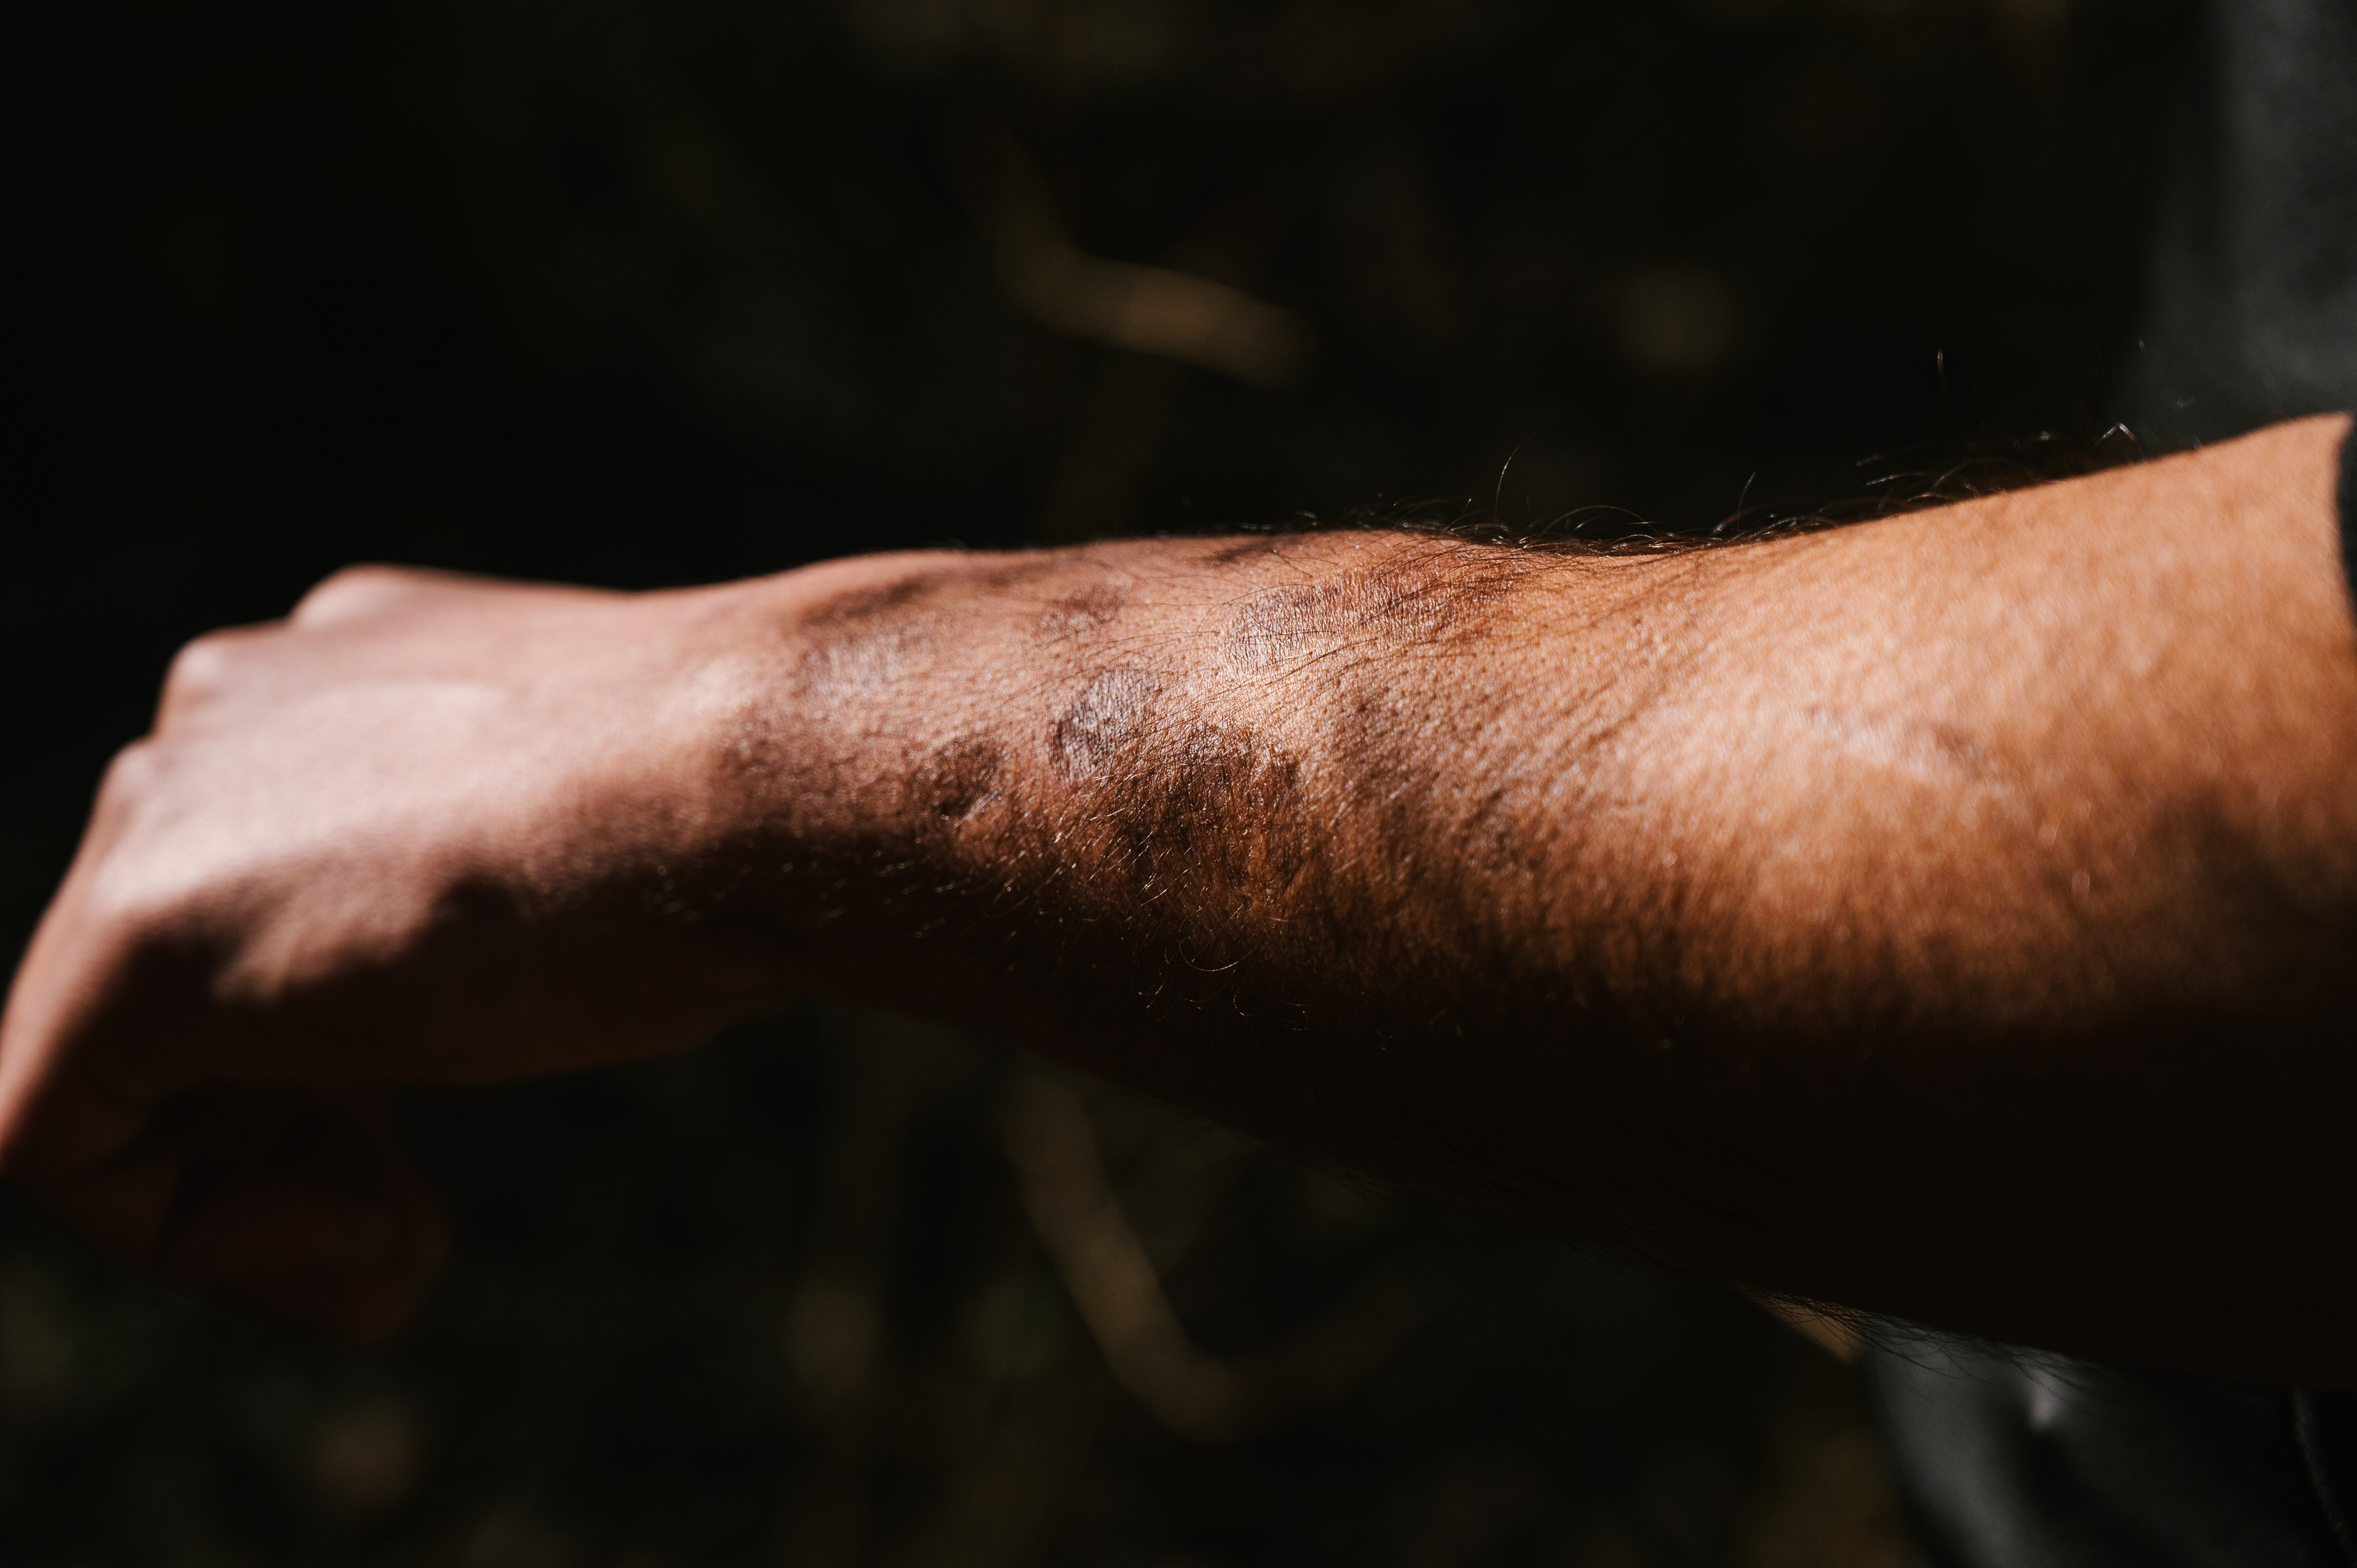 Fady shows the cigarette burns on his left arm.